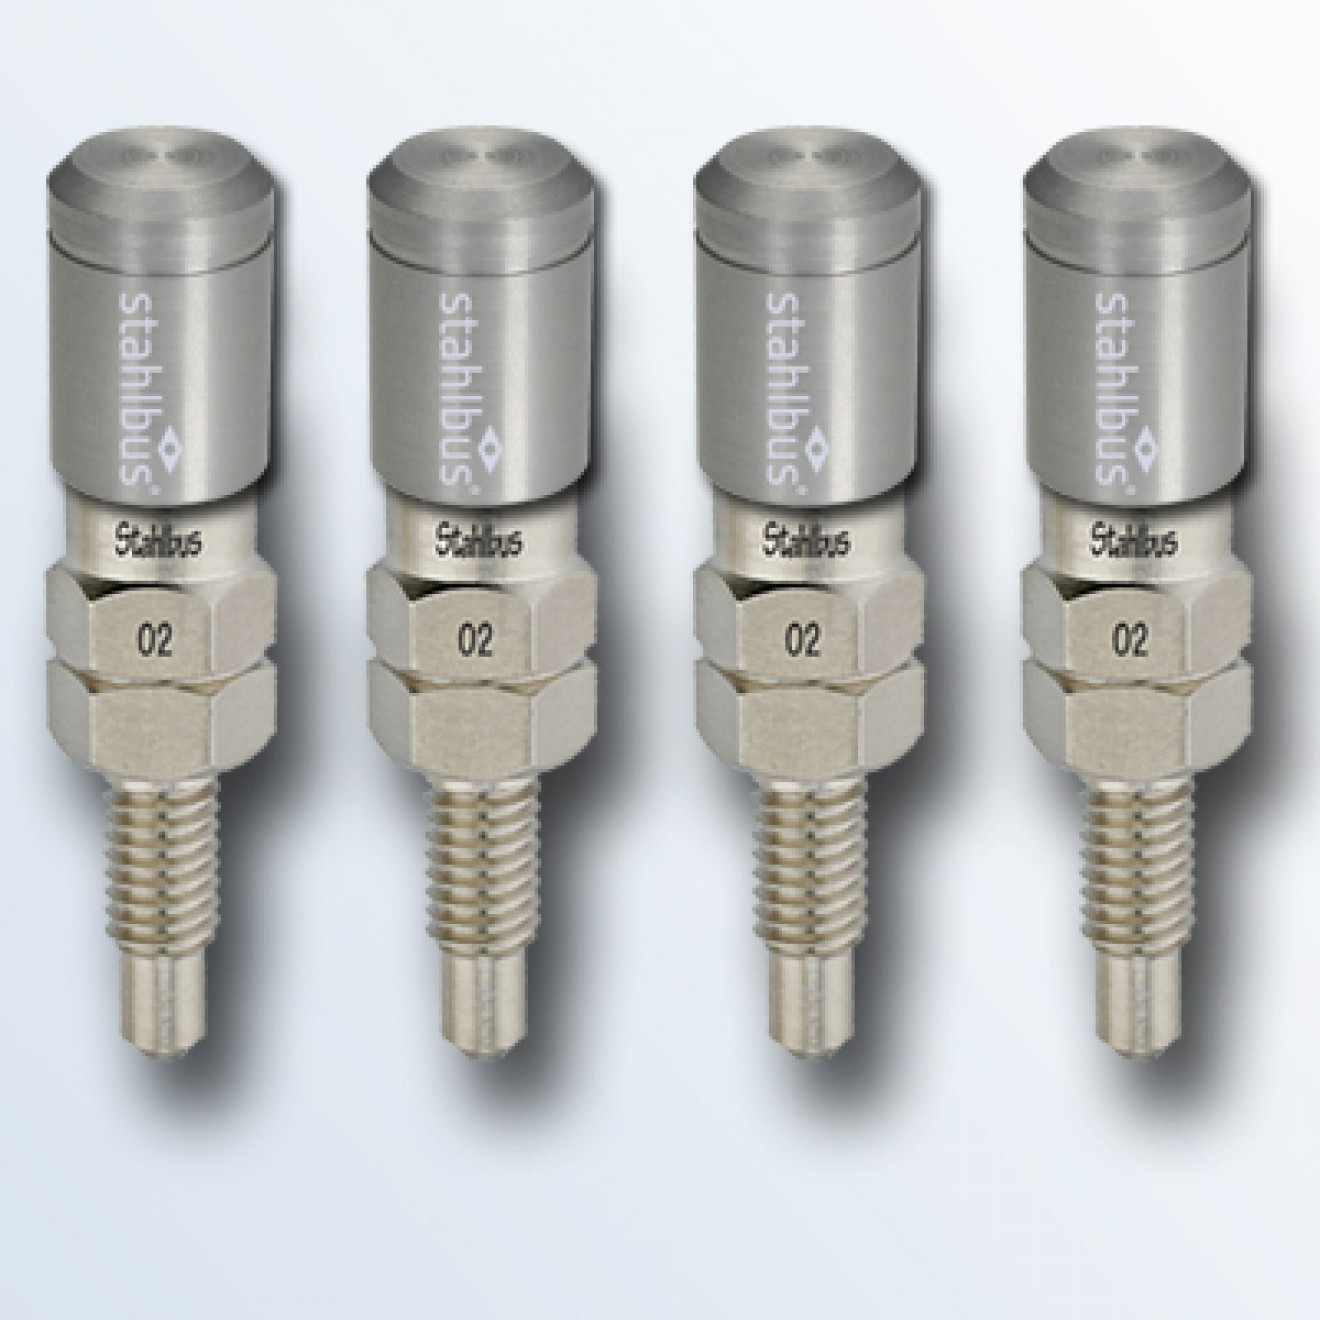 4-piece set stahlbus Bleeder valve M6x1.0x16mm, steel with natural coloured dust cap